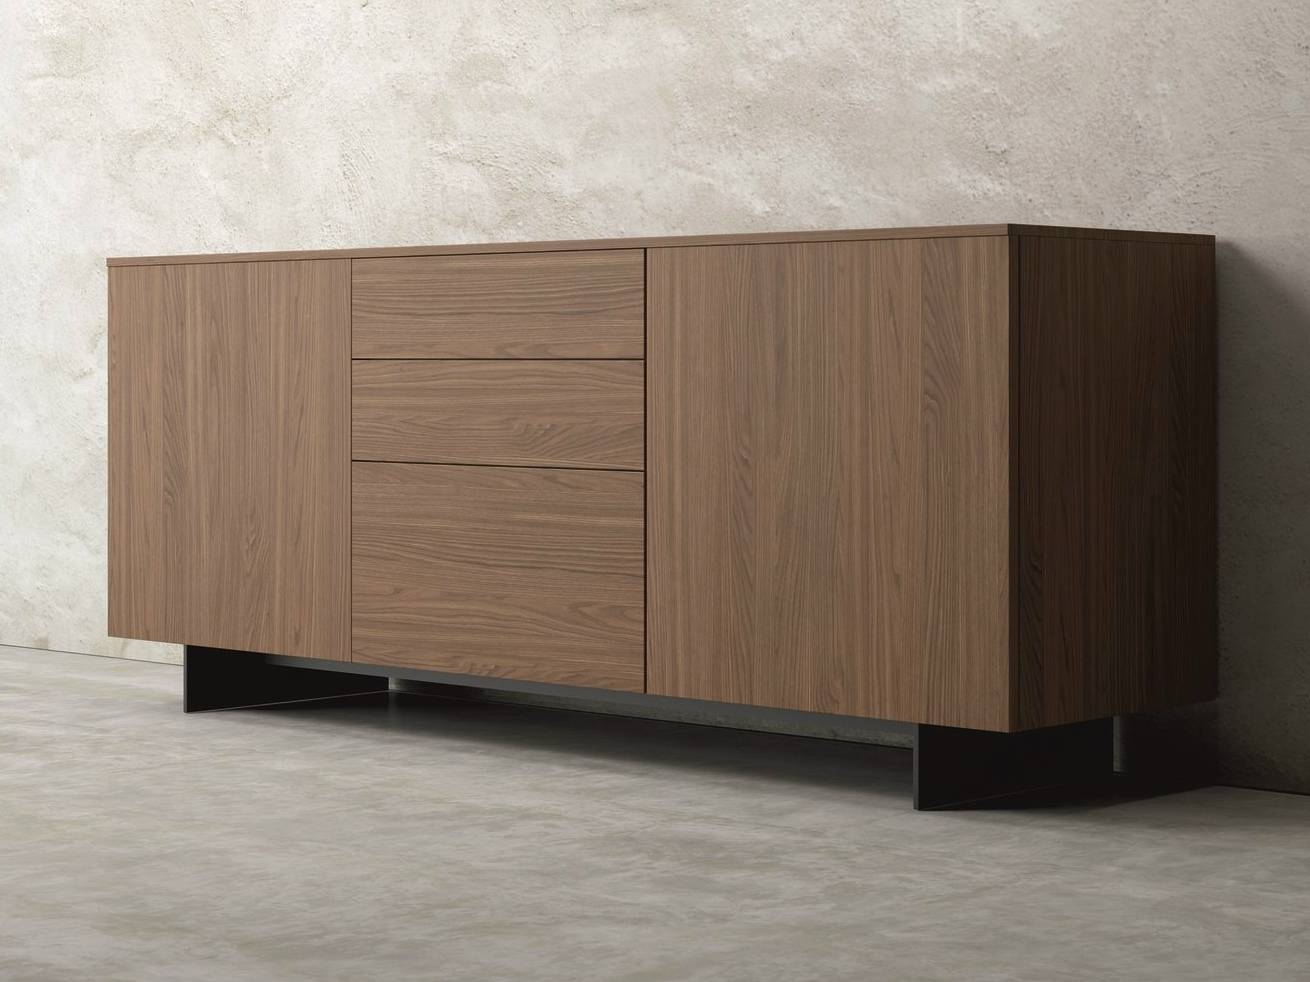 Slim | Walnut Sideboarddall'agnese Design Imago Design Inside Slim Sideboards (View 26 of 30)